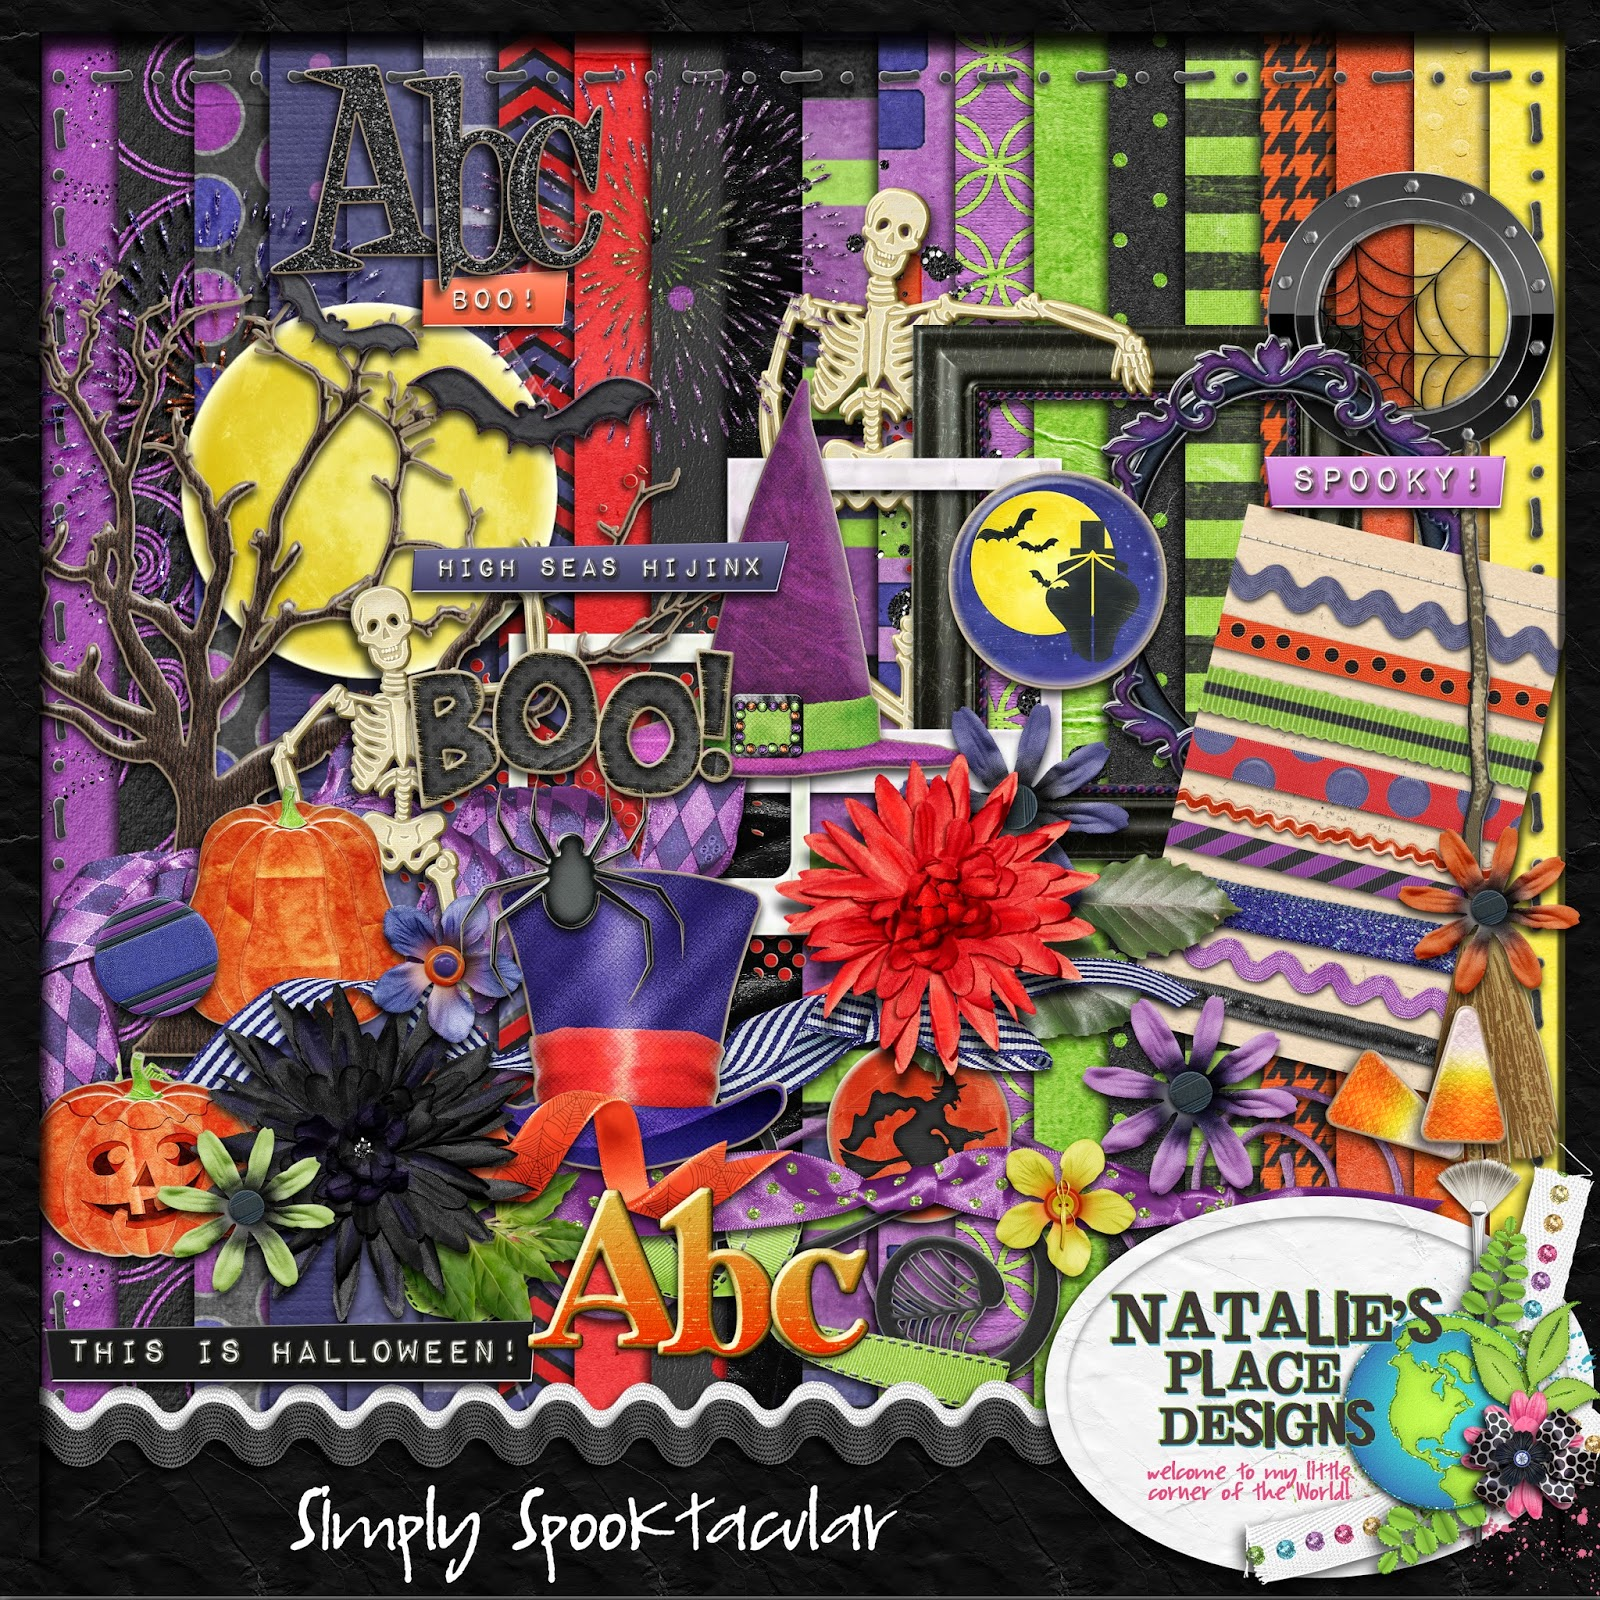 http://www.nataliesplacedesigns.com/store/p457/Simply_Spooktacular.html